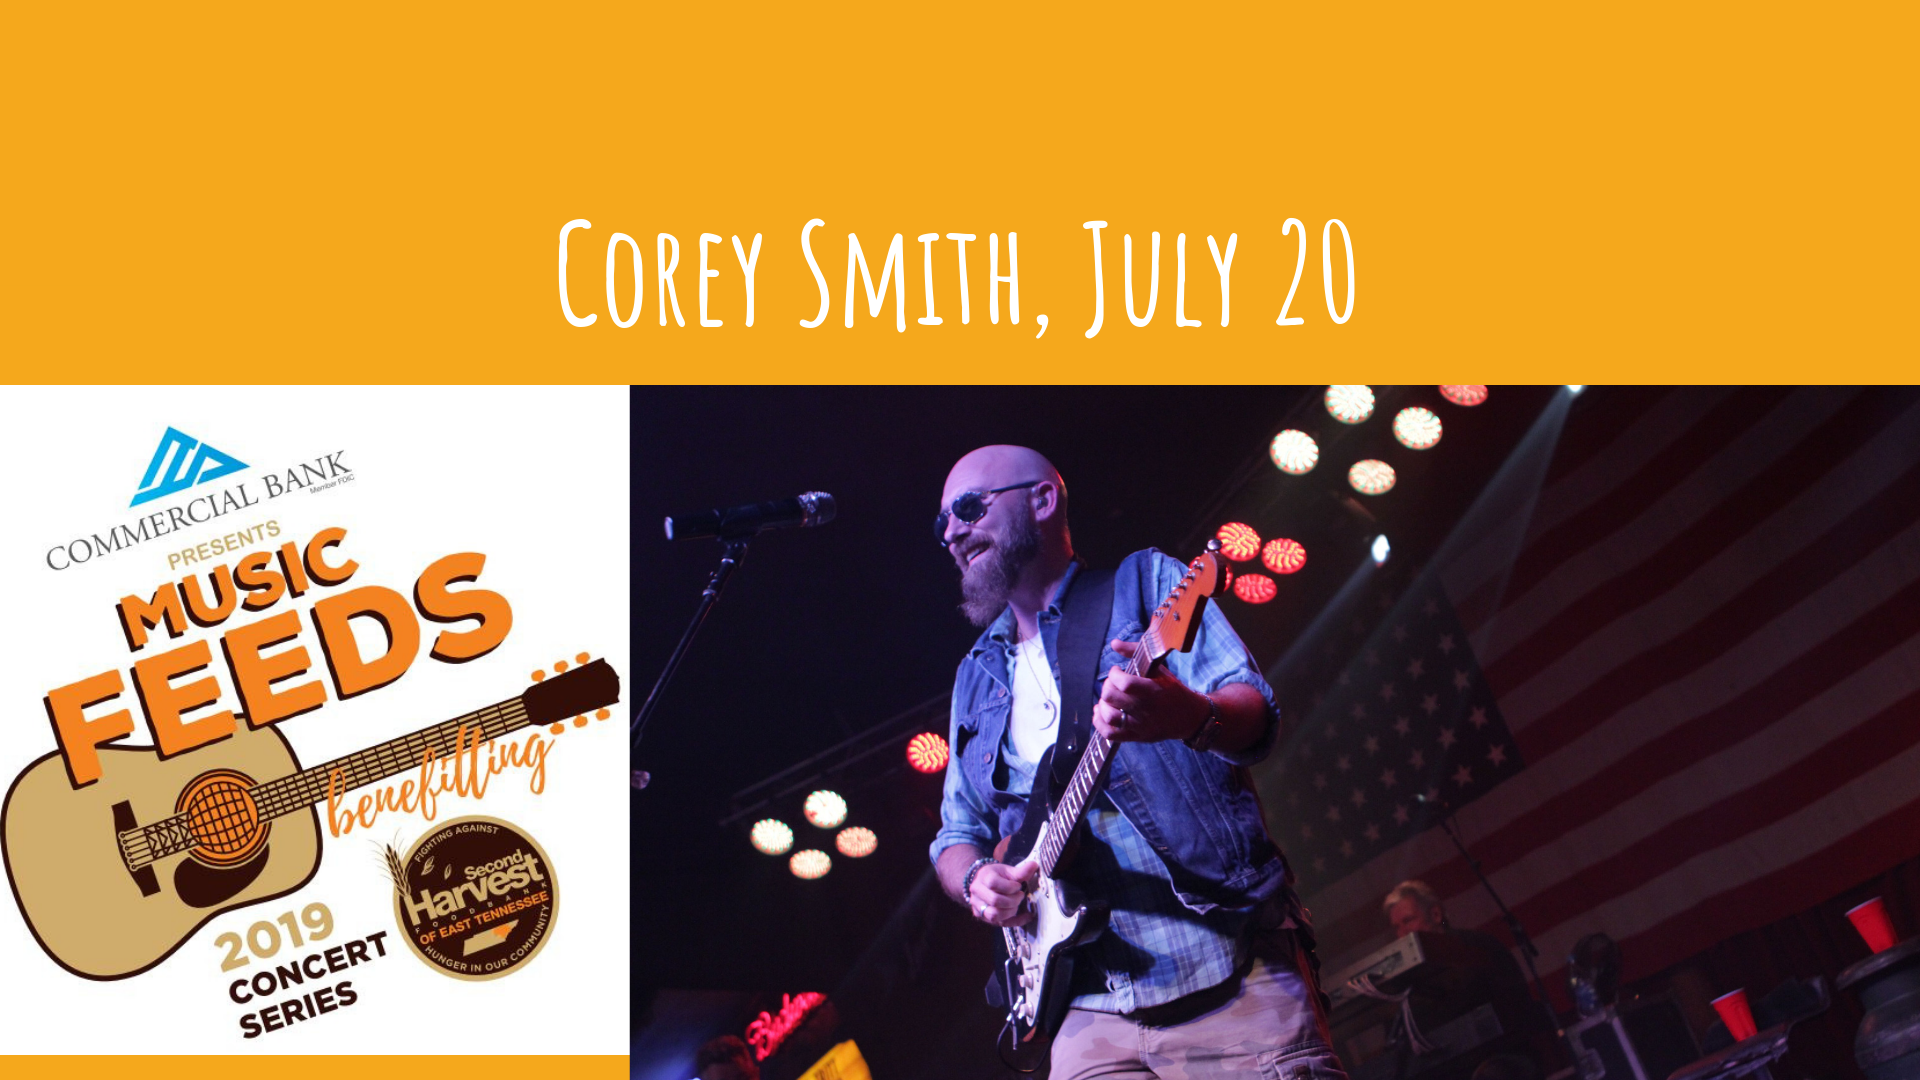 Music Feeds: Corey Smith – Second Harvest of East Tennessee